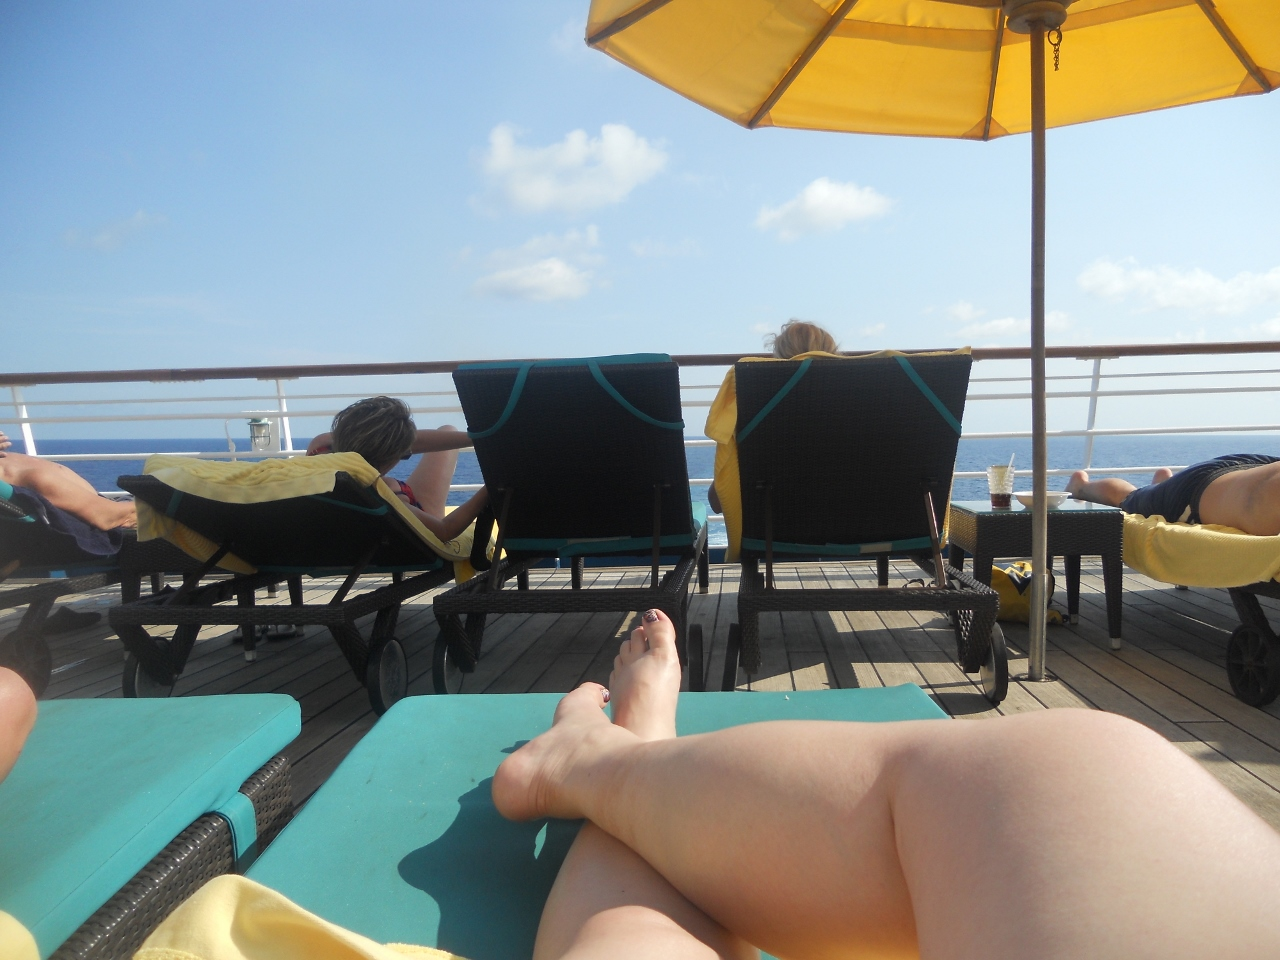 It's easy to see a day quickly slip away from the comfort of a cruise ship deck chair.